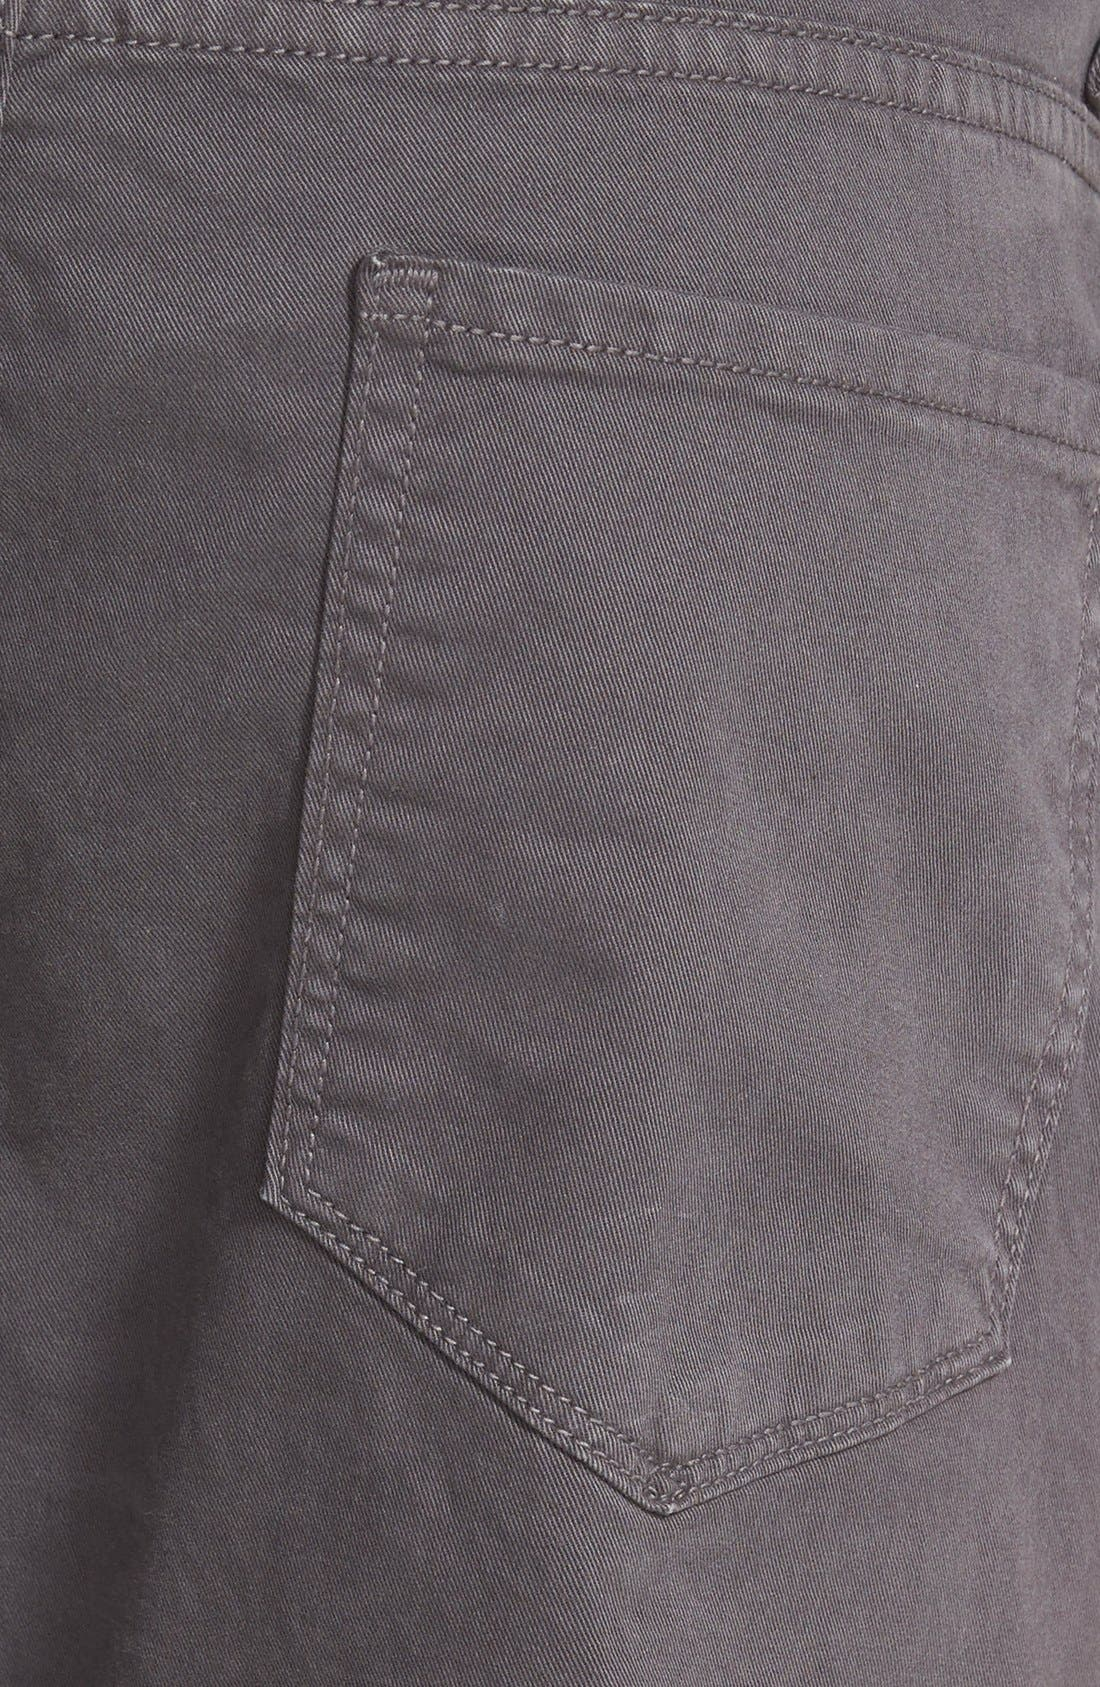 Normandie Slim Straight Leg Twill Pants,                             Alternate thumbnail 2, color,                             SOOT DARK GREY